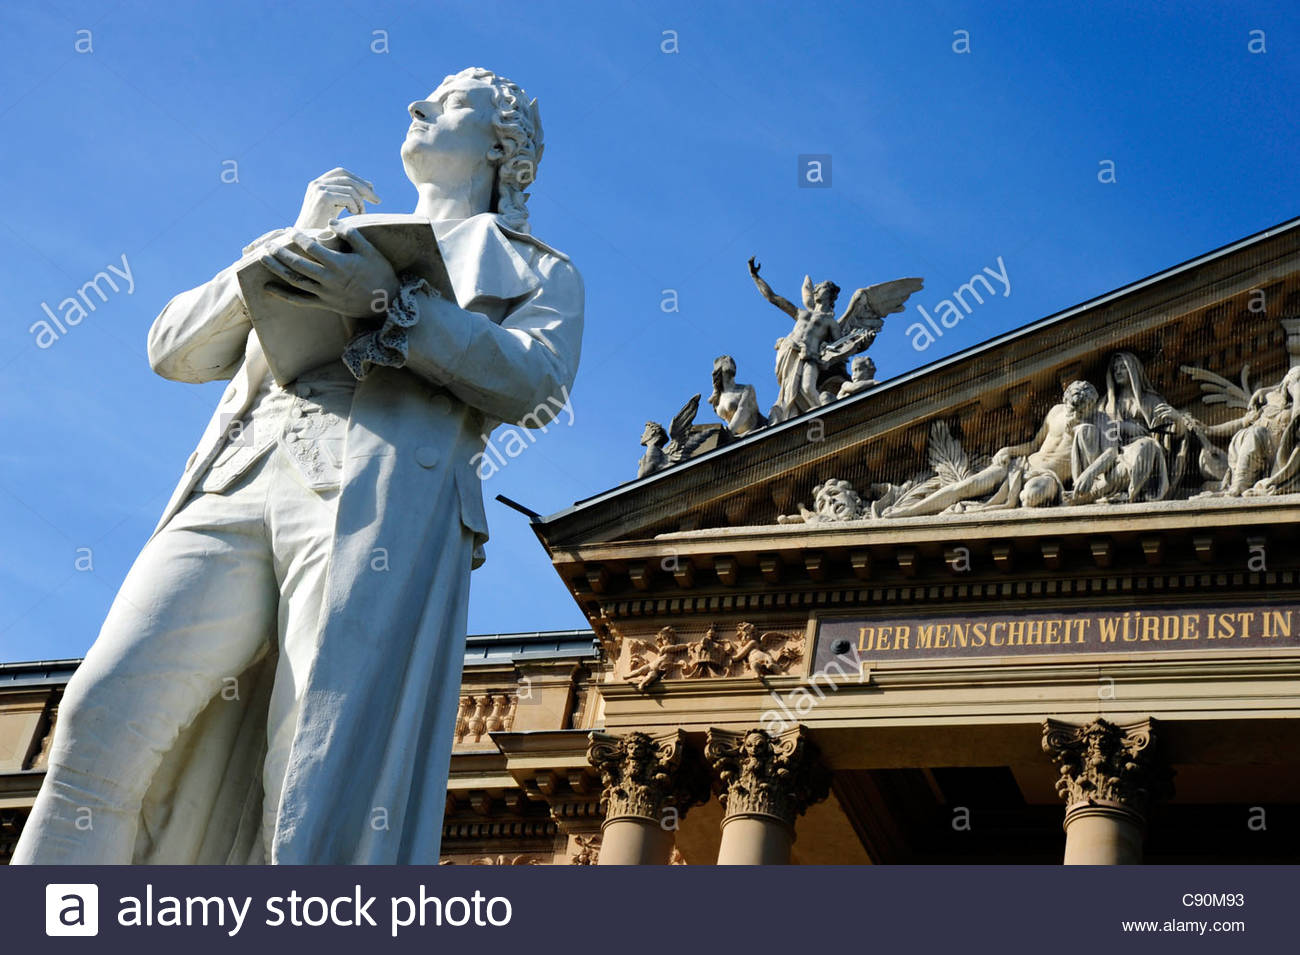 Detail of Hessian State Theater behind Schiller statue, Wiesbaden, Hesse, Germany, Europe - Stock Image